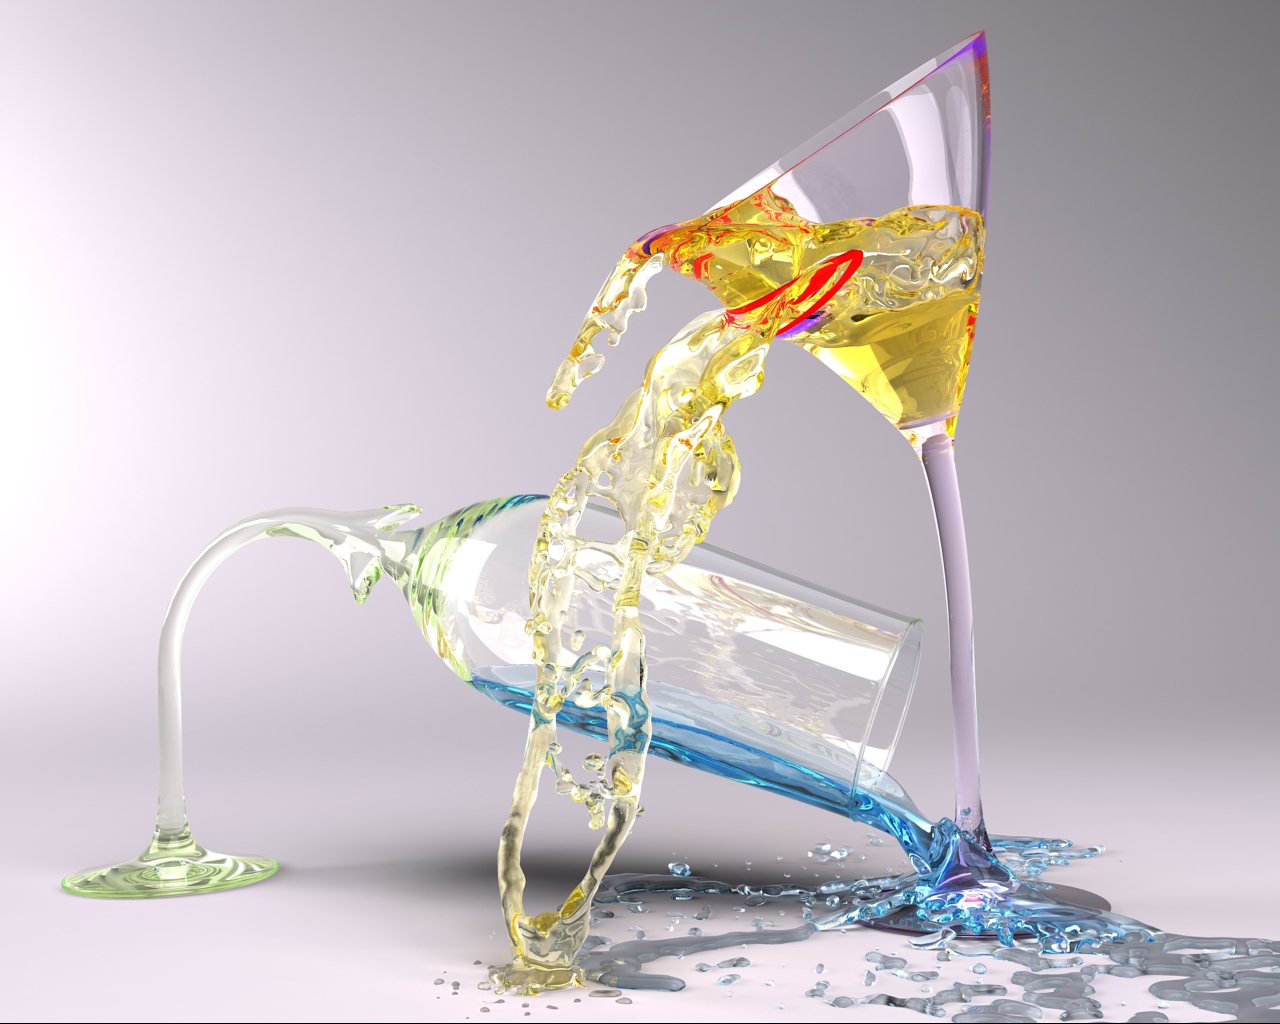 glassical emotions drunk by HD Wallpaper